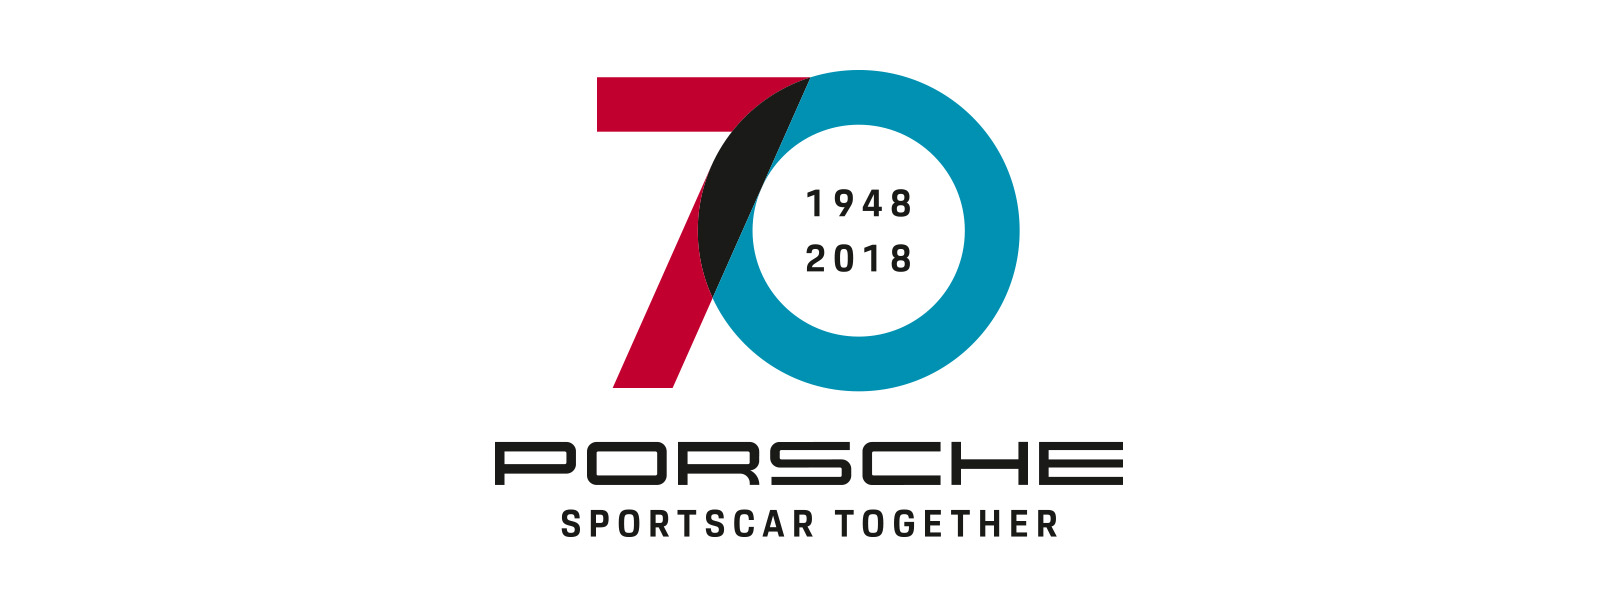 Porsche Club Singapore 70 Years Of Porsche Sports Cars